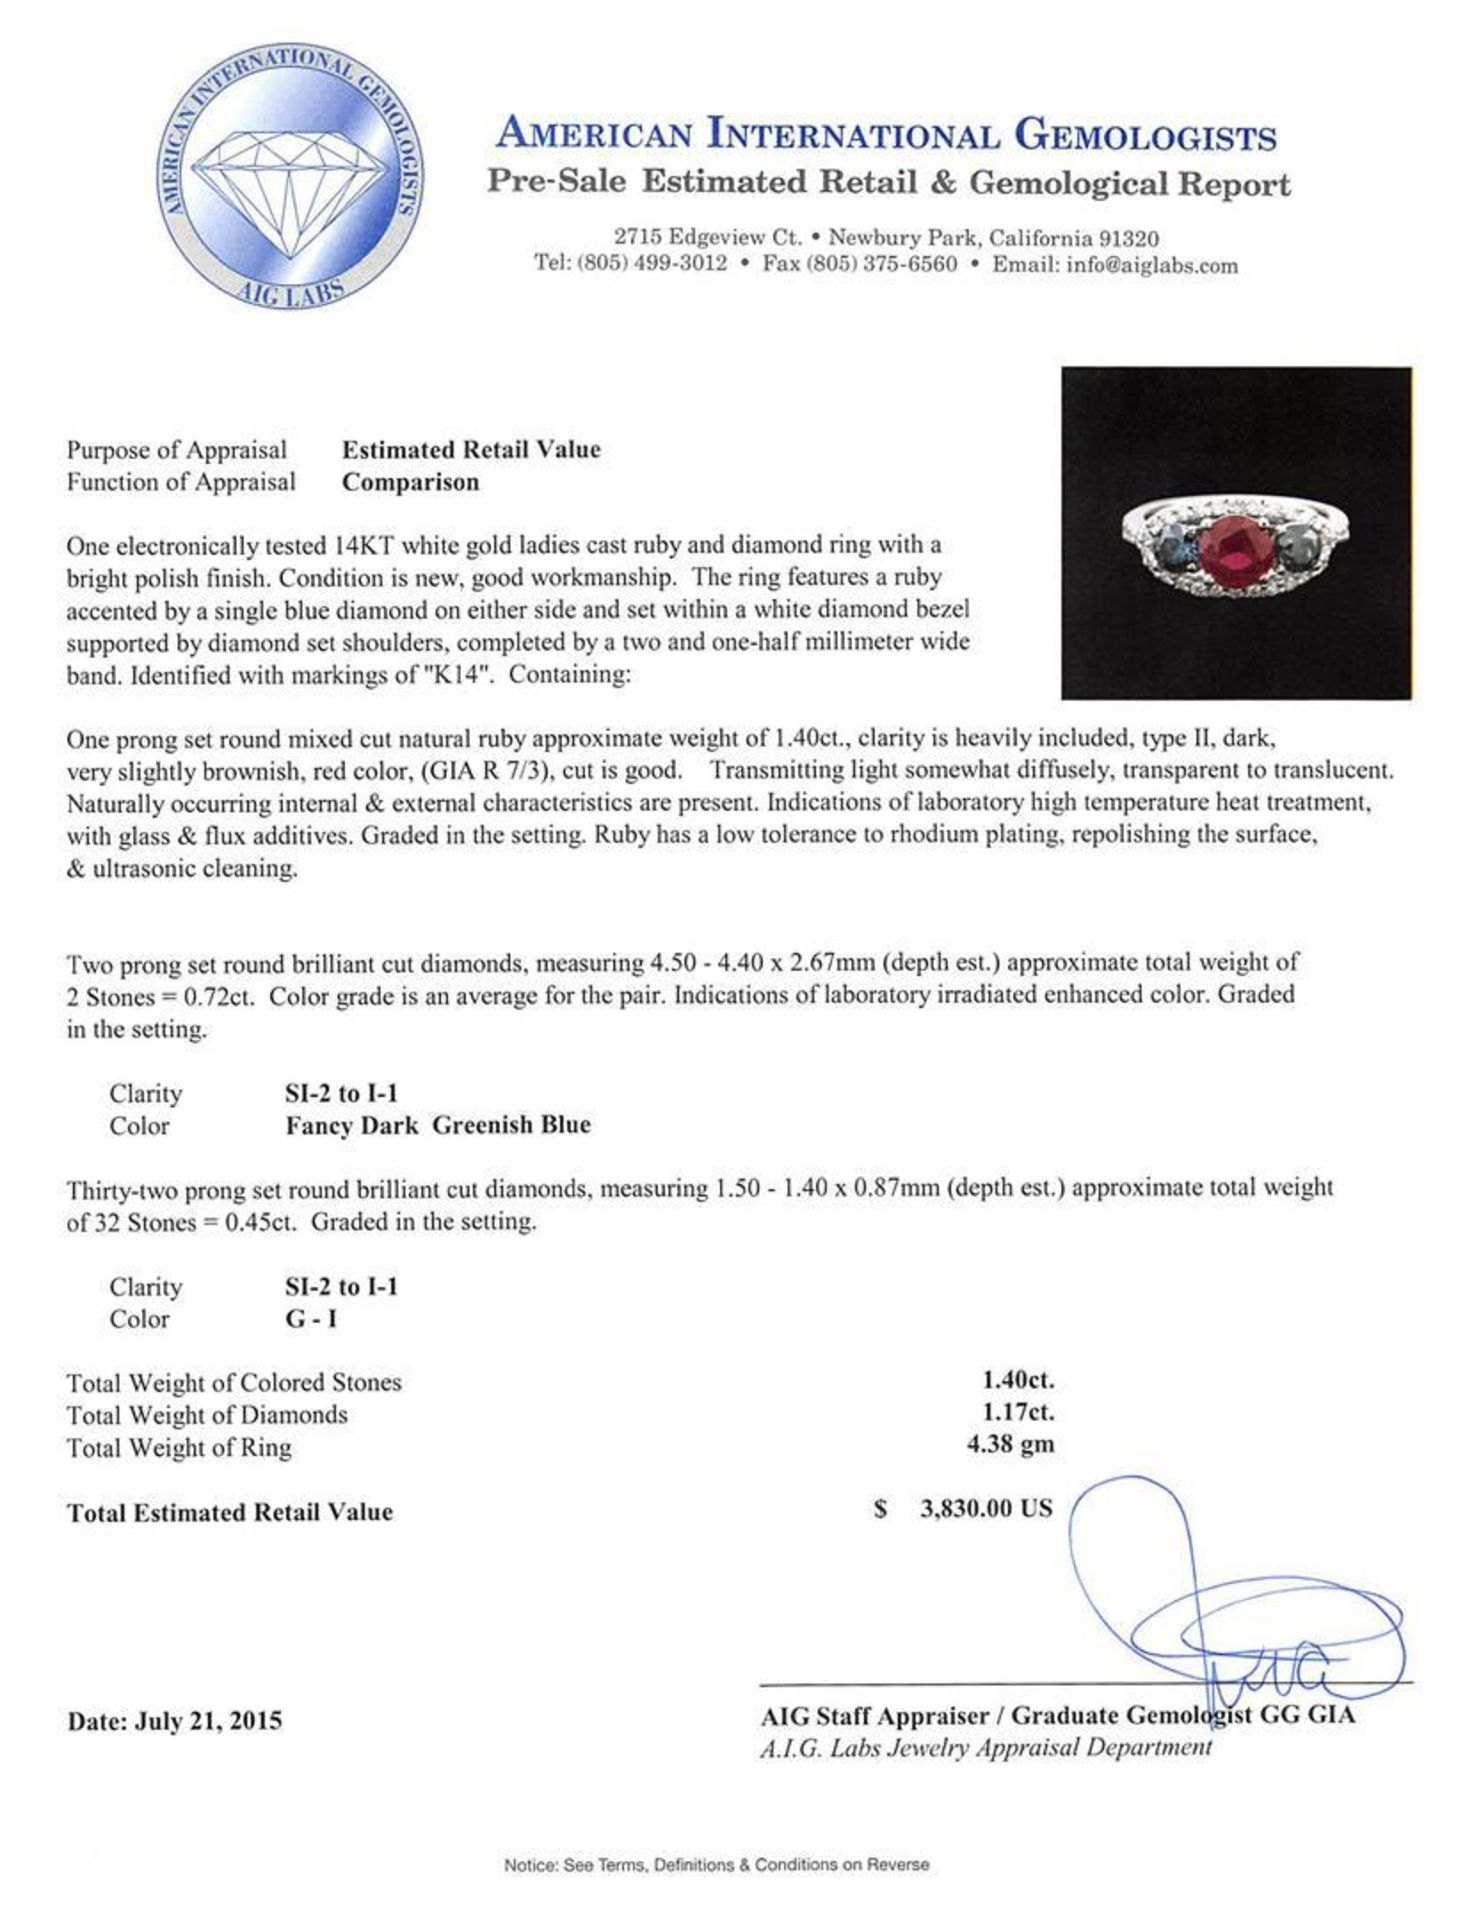 1.40 ctw Ruby and Diamond Ring - 14KT White Gold - Image 4 of 4